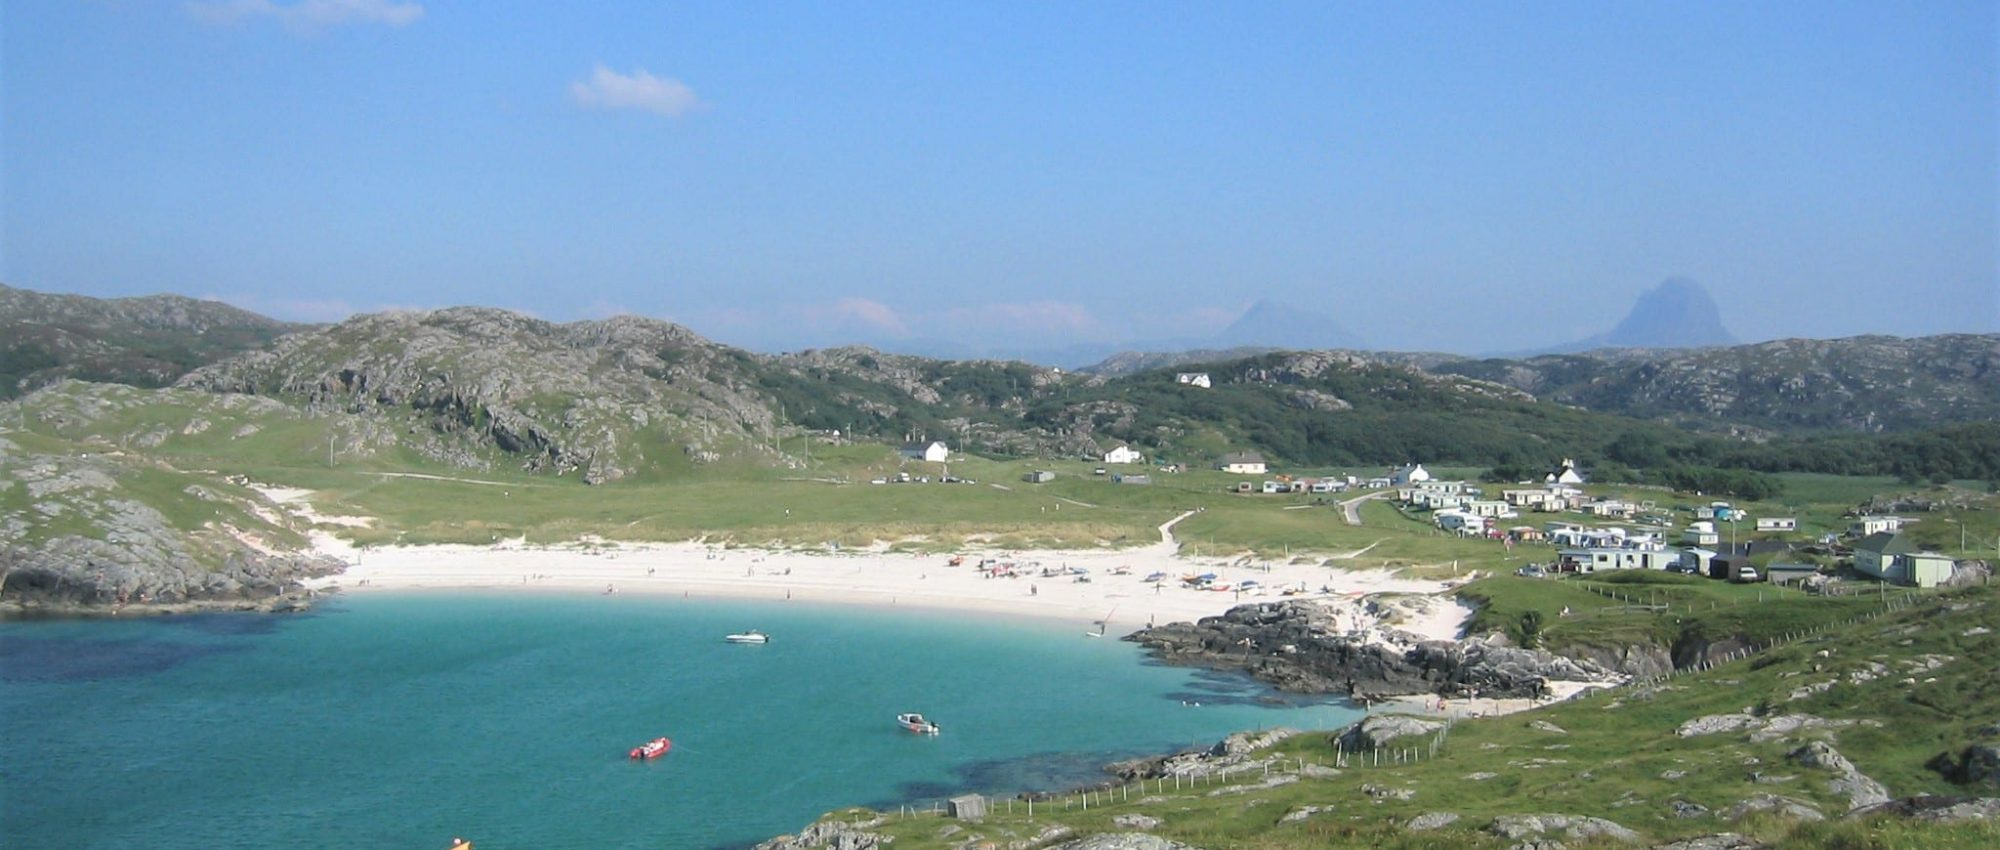 Places to Eat in Achmelvich Beach